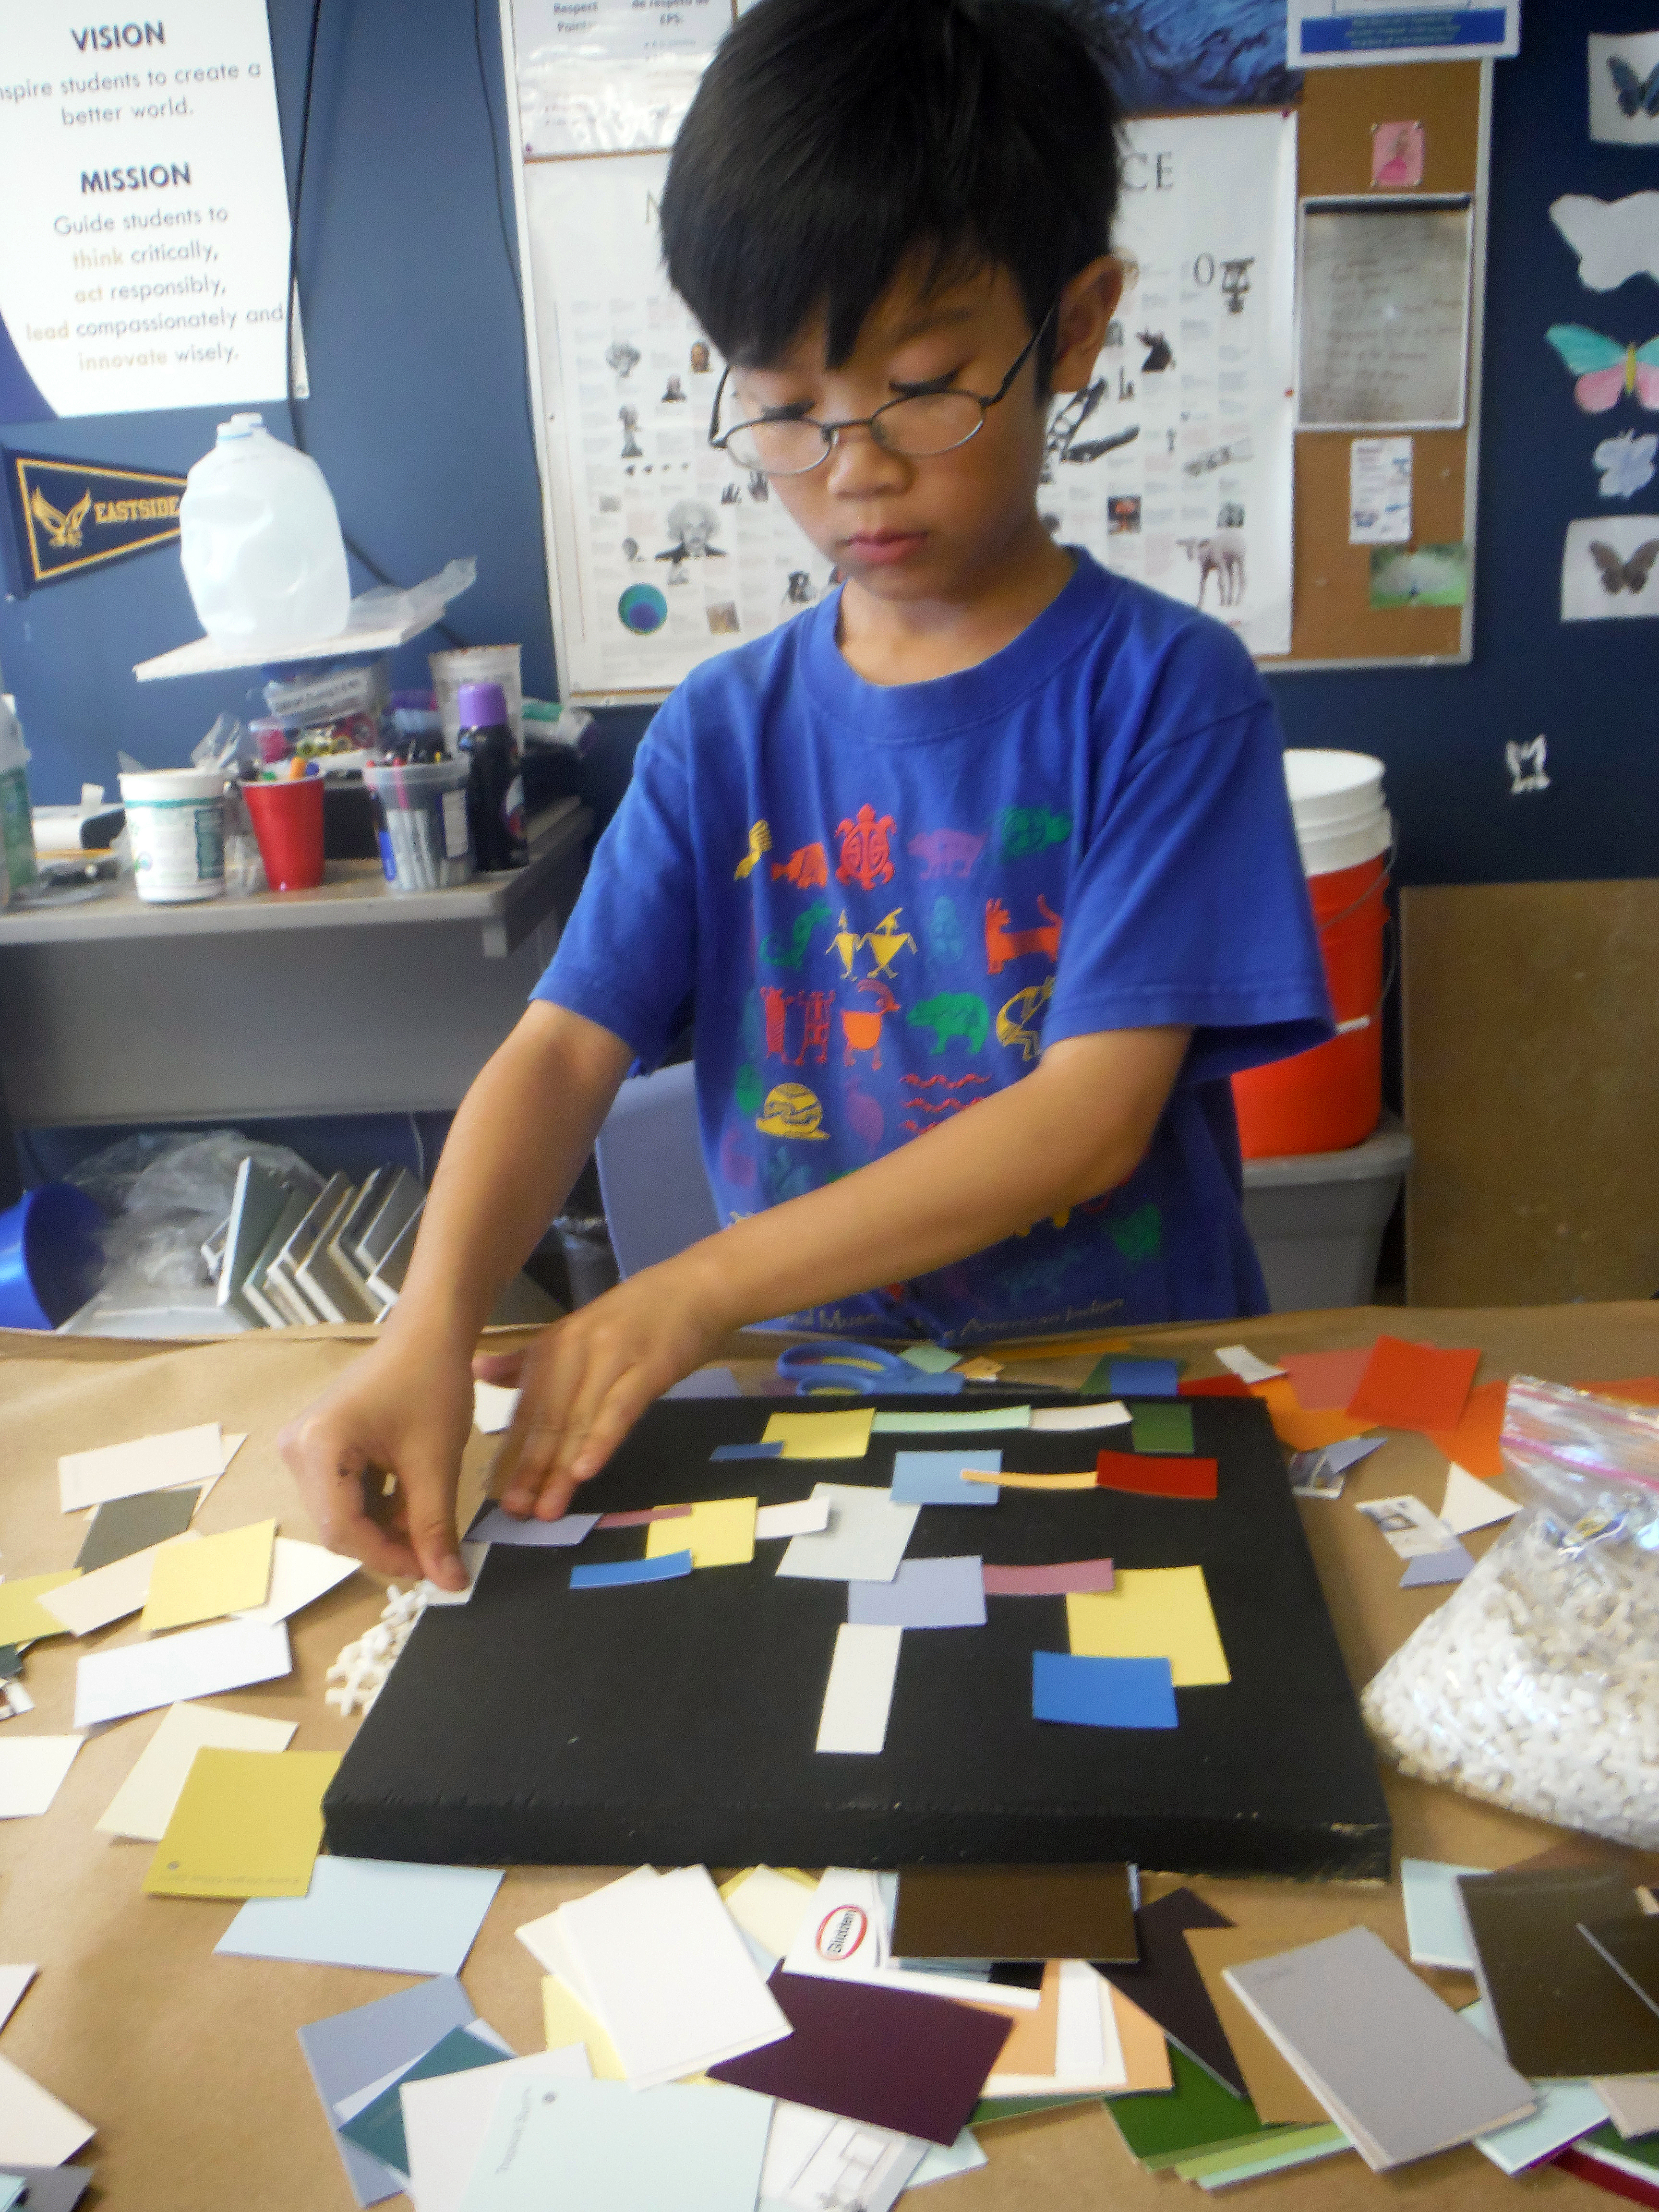 Youth student explores collage